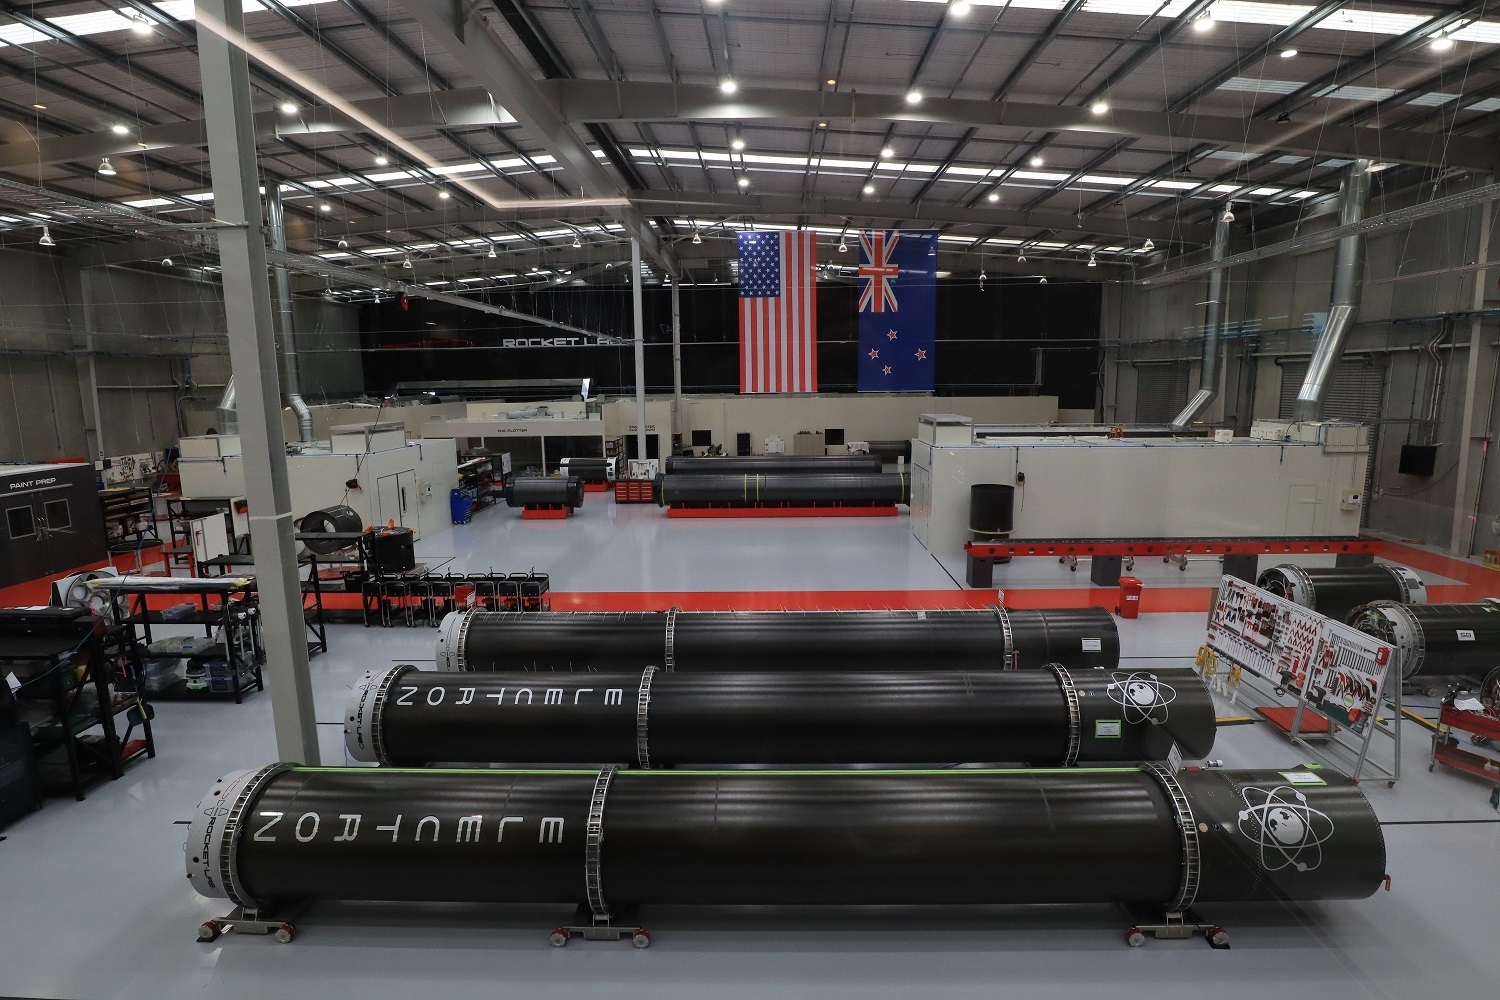 Rocket Lab executive says company is well positioned to weather crisis